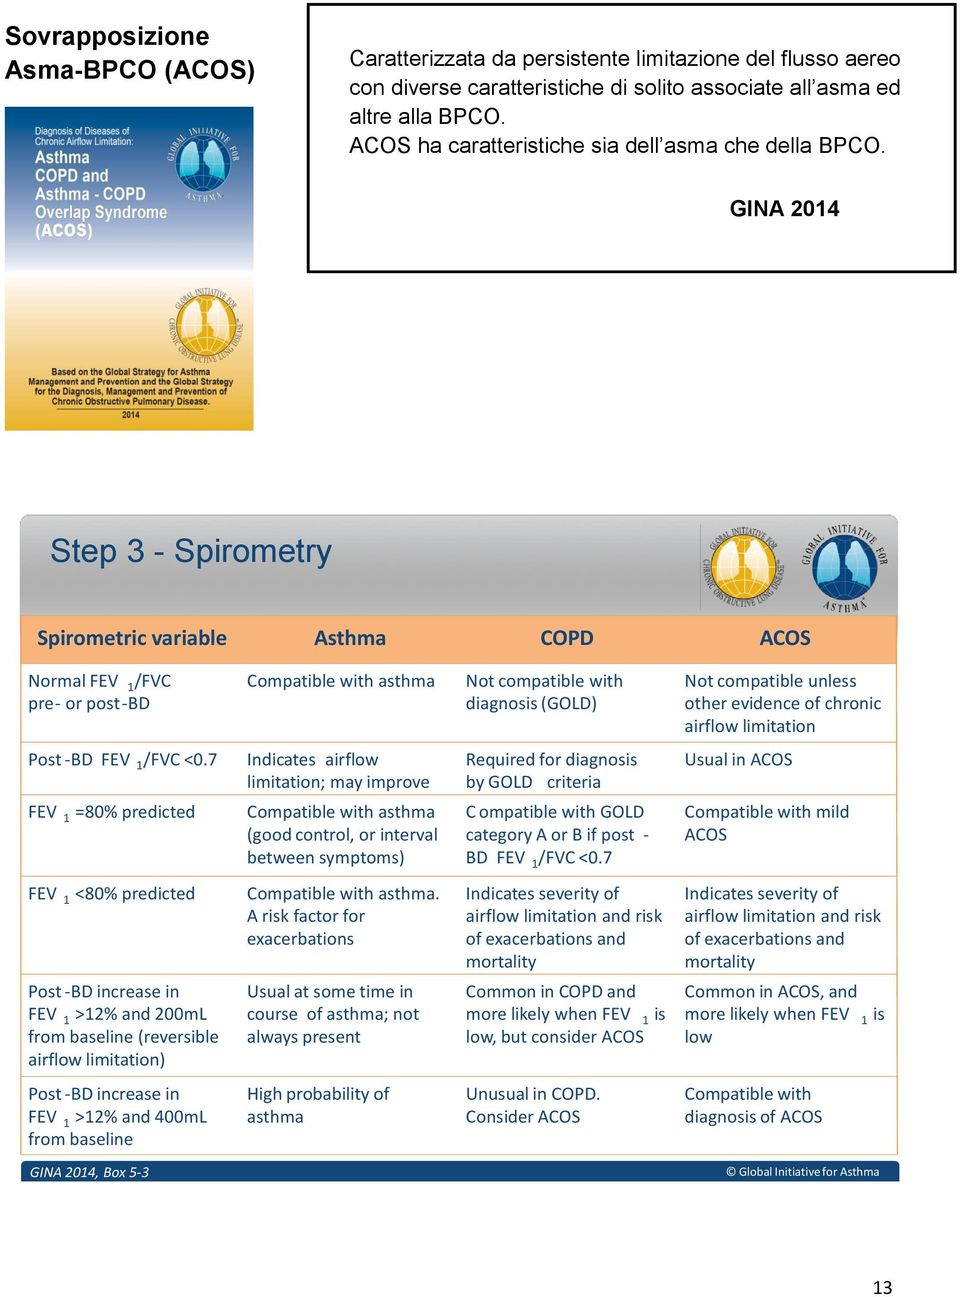 GINA 2014 Step 3 - Spirometry Spirometric variable Asthma COPD ACOS Normal FEV 1 /FVC pre- or post-bd Compatible with asthma Not compatible with diagnosis (GOLD) Not compatible unless other evidence